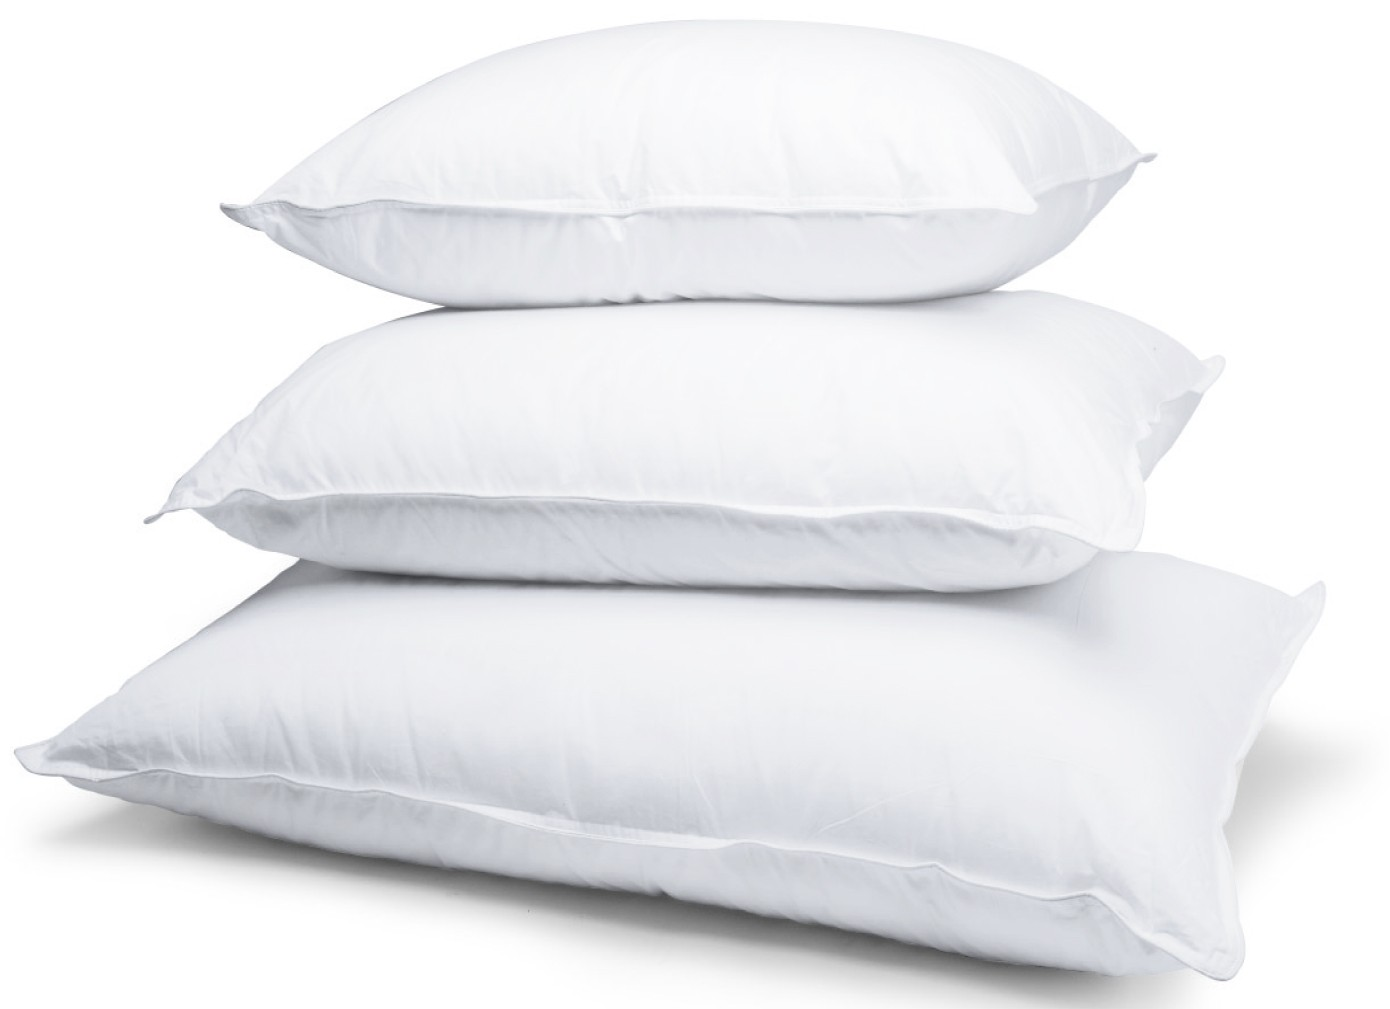 Set of 2 Caress Standard Pillows Polyester Bed Pillows by BlowOut Bedding